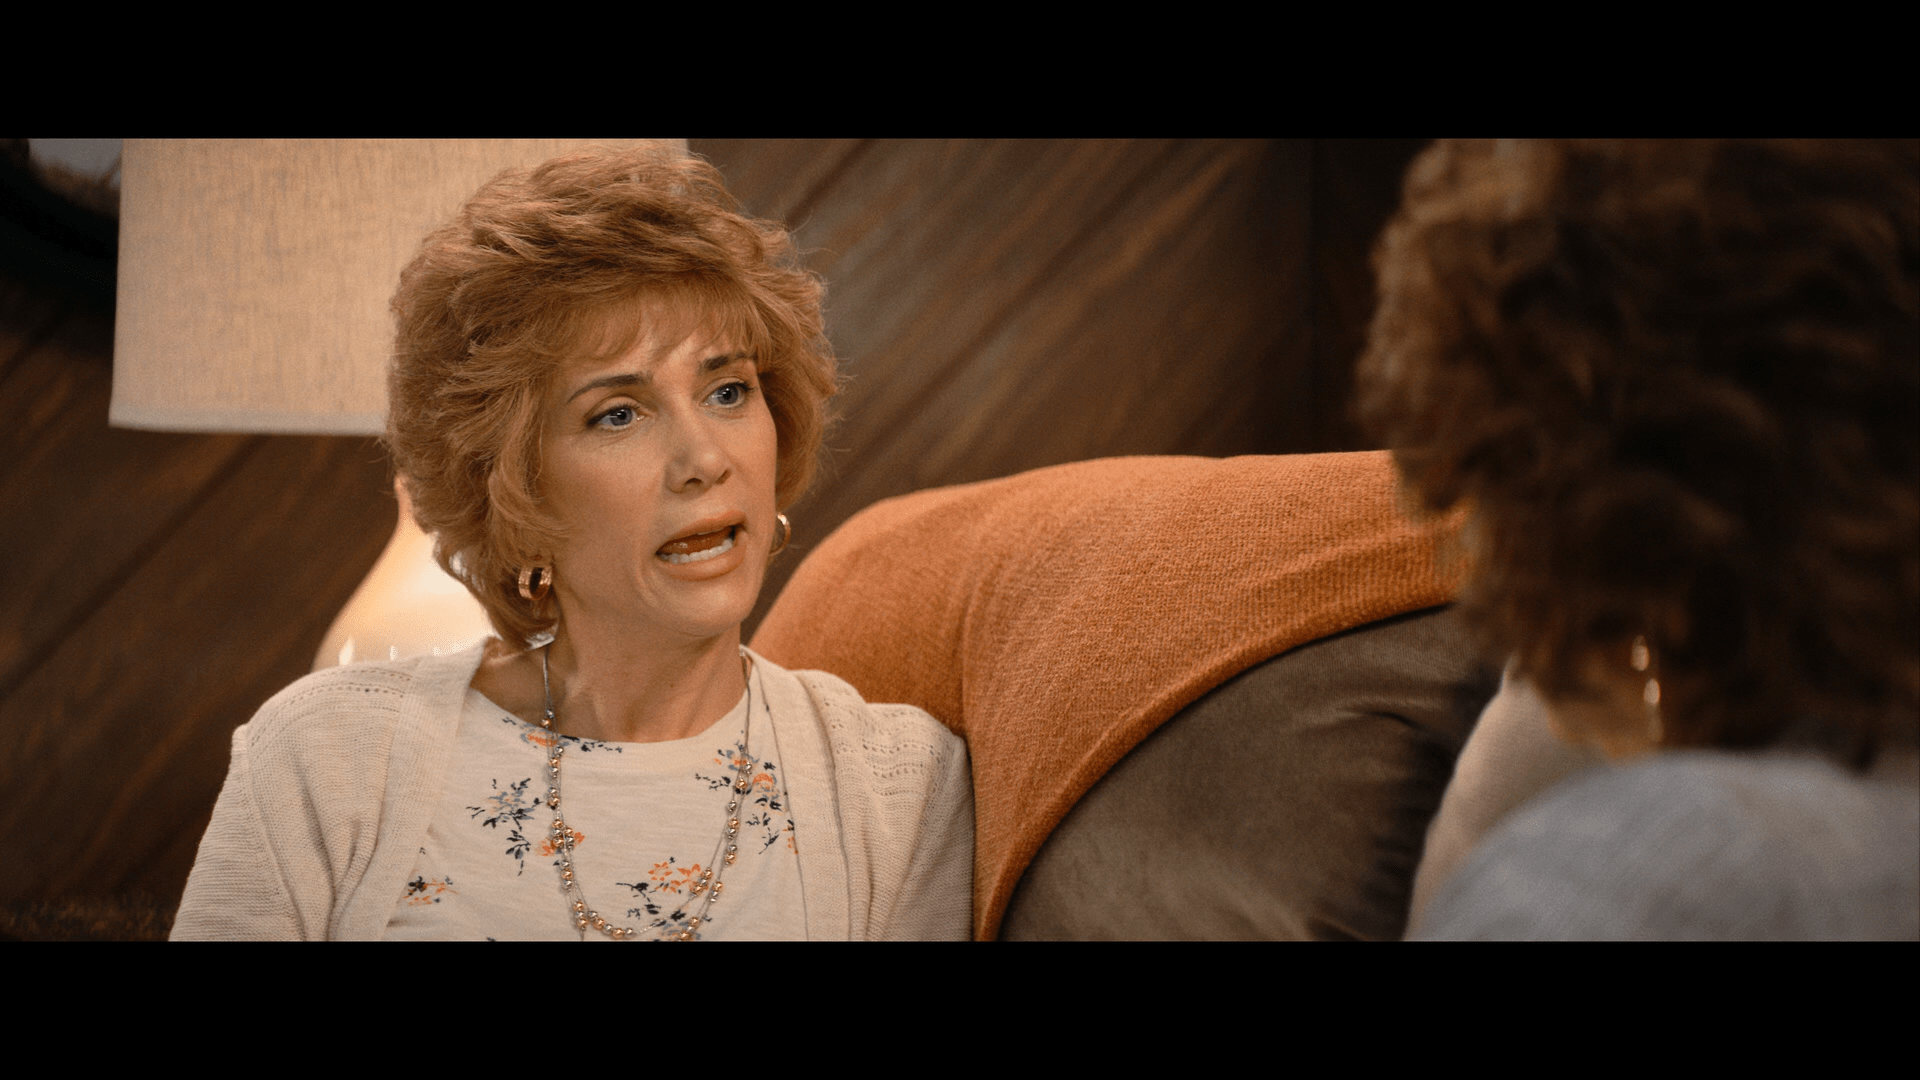 Barb and Star Go to Vista Del Mar (2021) [Blu-ray review] 4